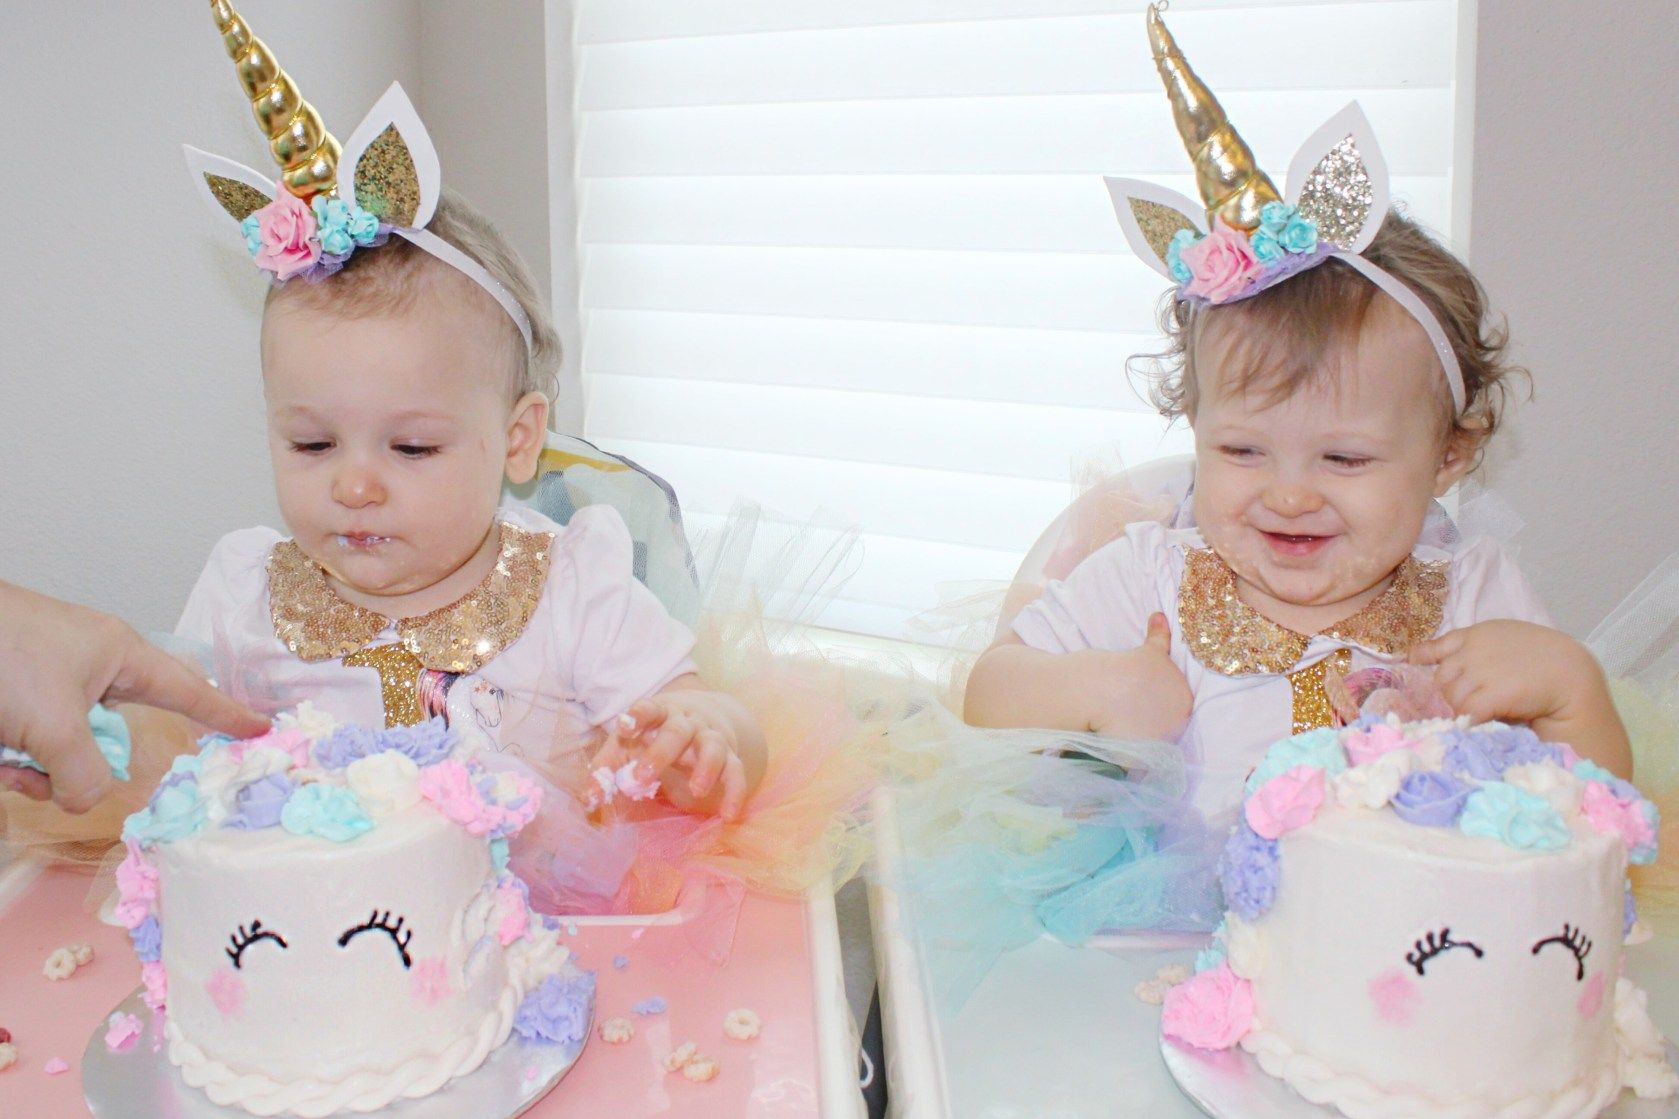 Pastel Unicorn First Birthday Party - Girls birthday party themes, 1st birthday party decorations, Twin birthday parties, Unicorn birthday outfit, First birthday party themes, Unicorn themed birthday - We threw a magical unicornthemed birthday party for our twin girls first birthday! I'm sharing easy tips for throwing a fun unicorn birthday!